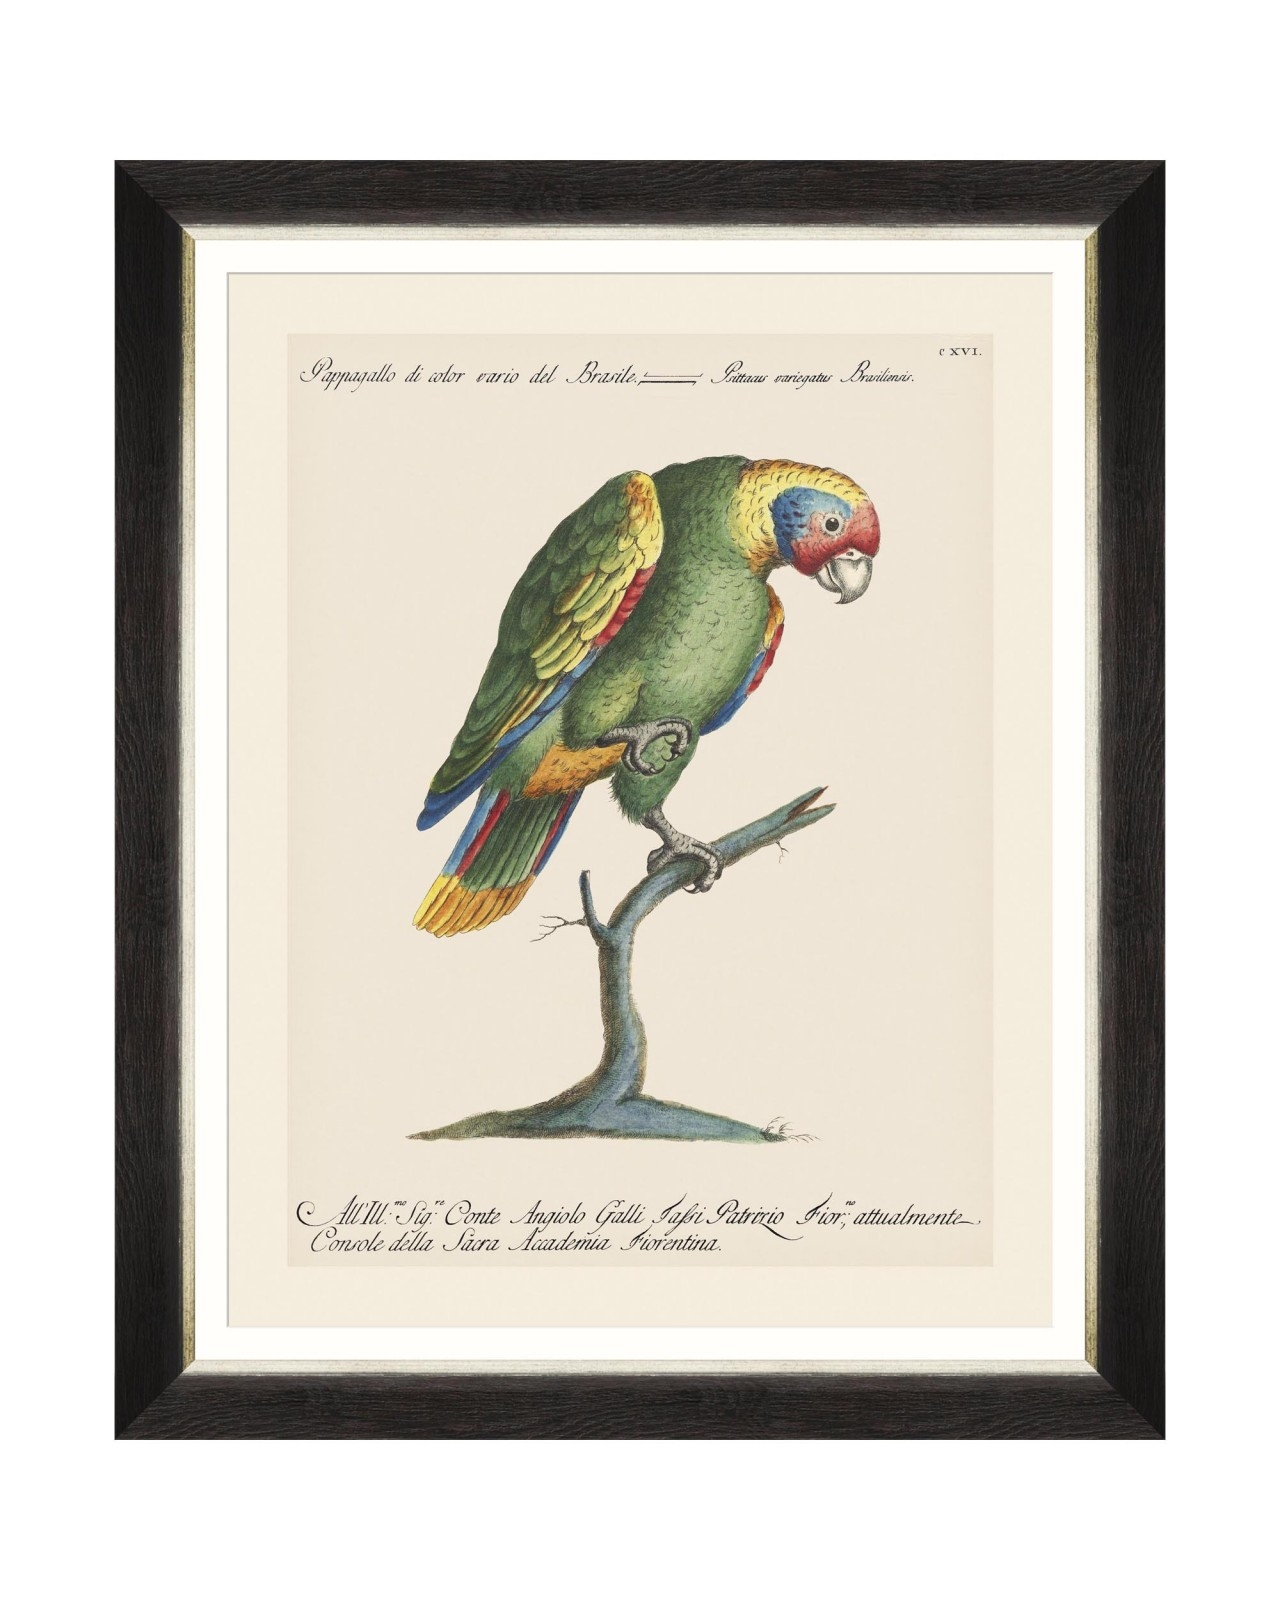 Tablou Framed Art Parrots Of Brasil IX, 40 x 50 cm imagine